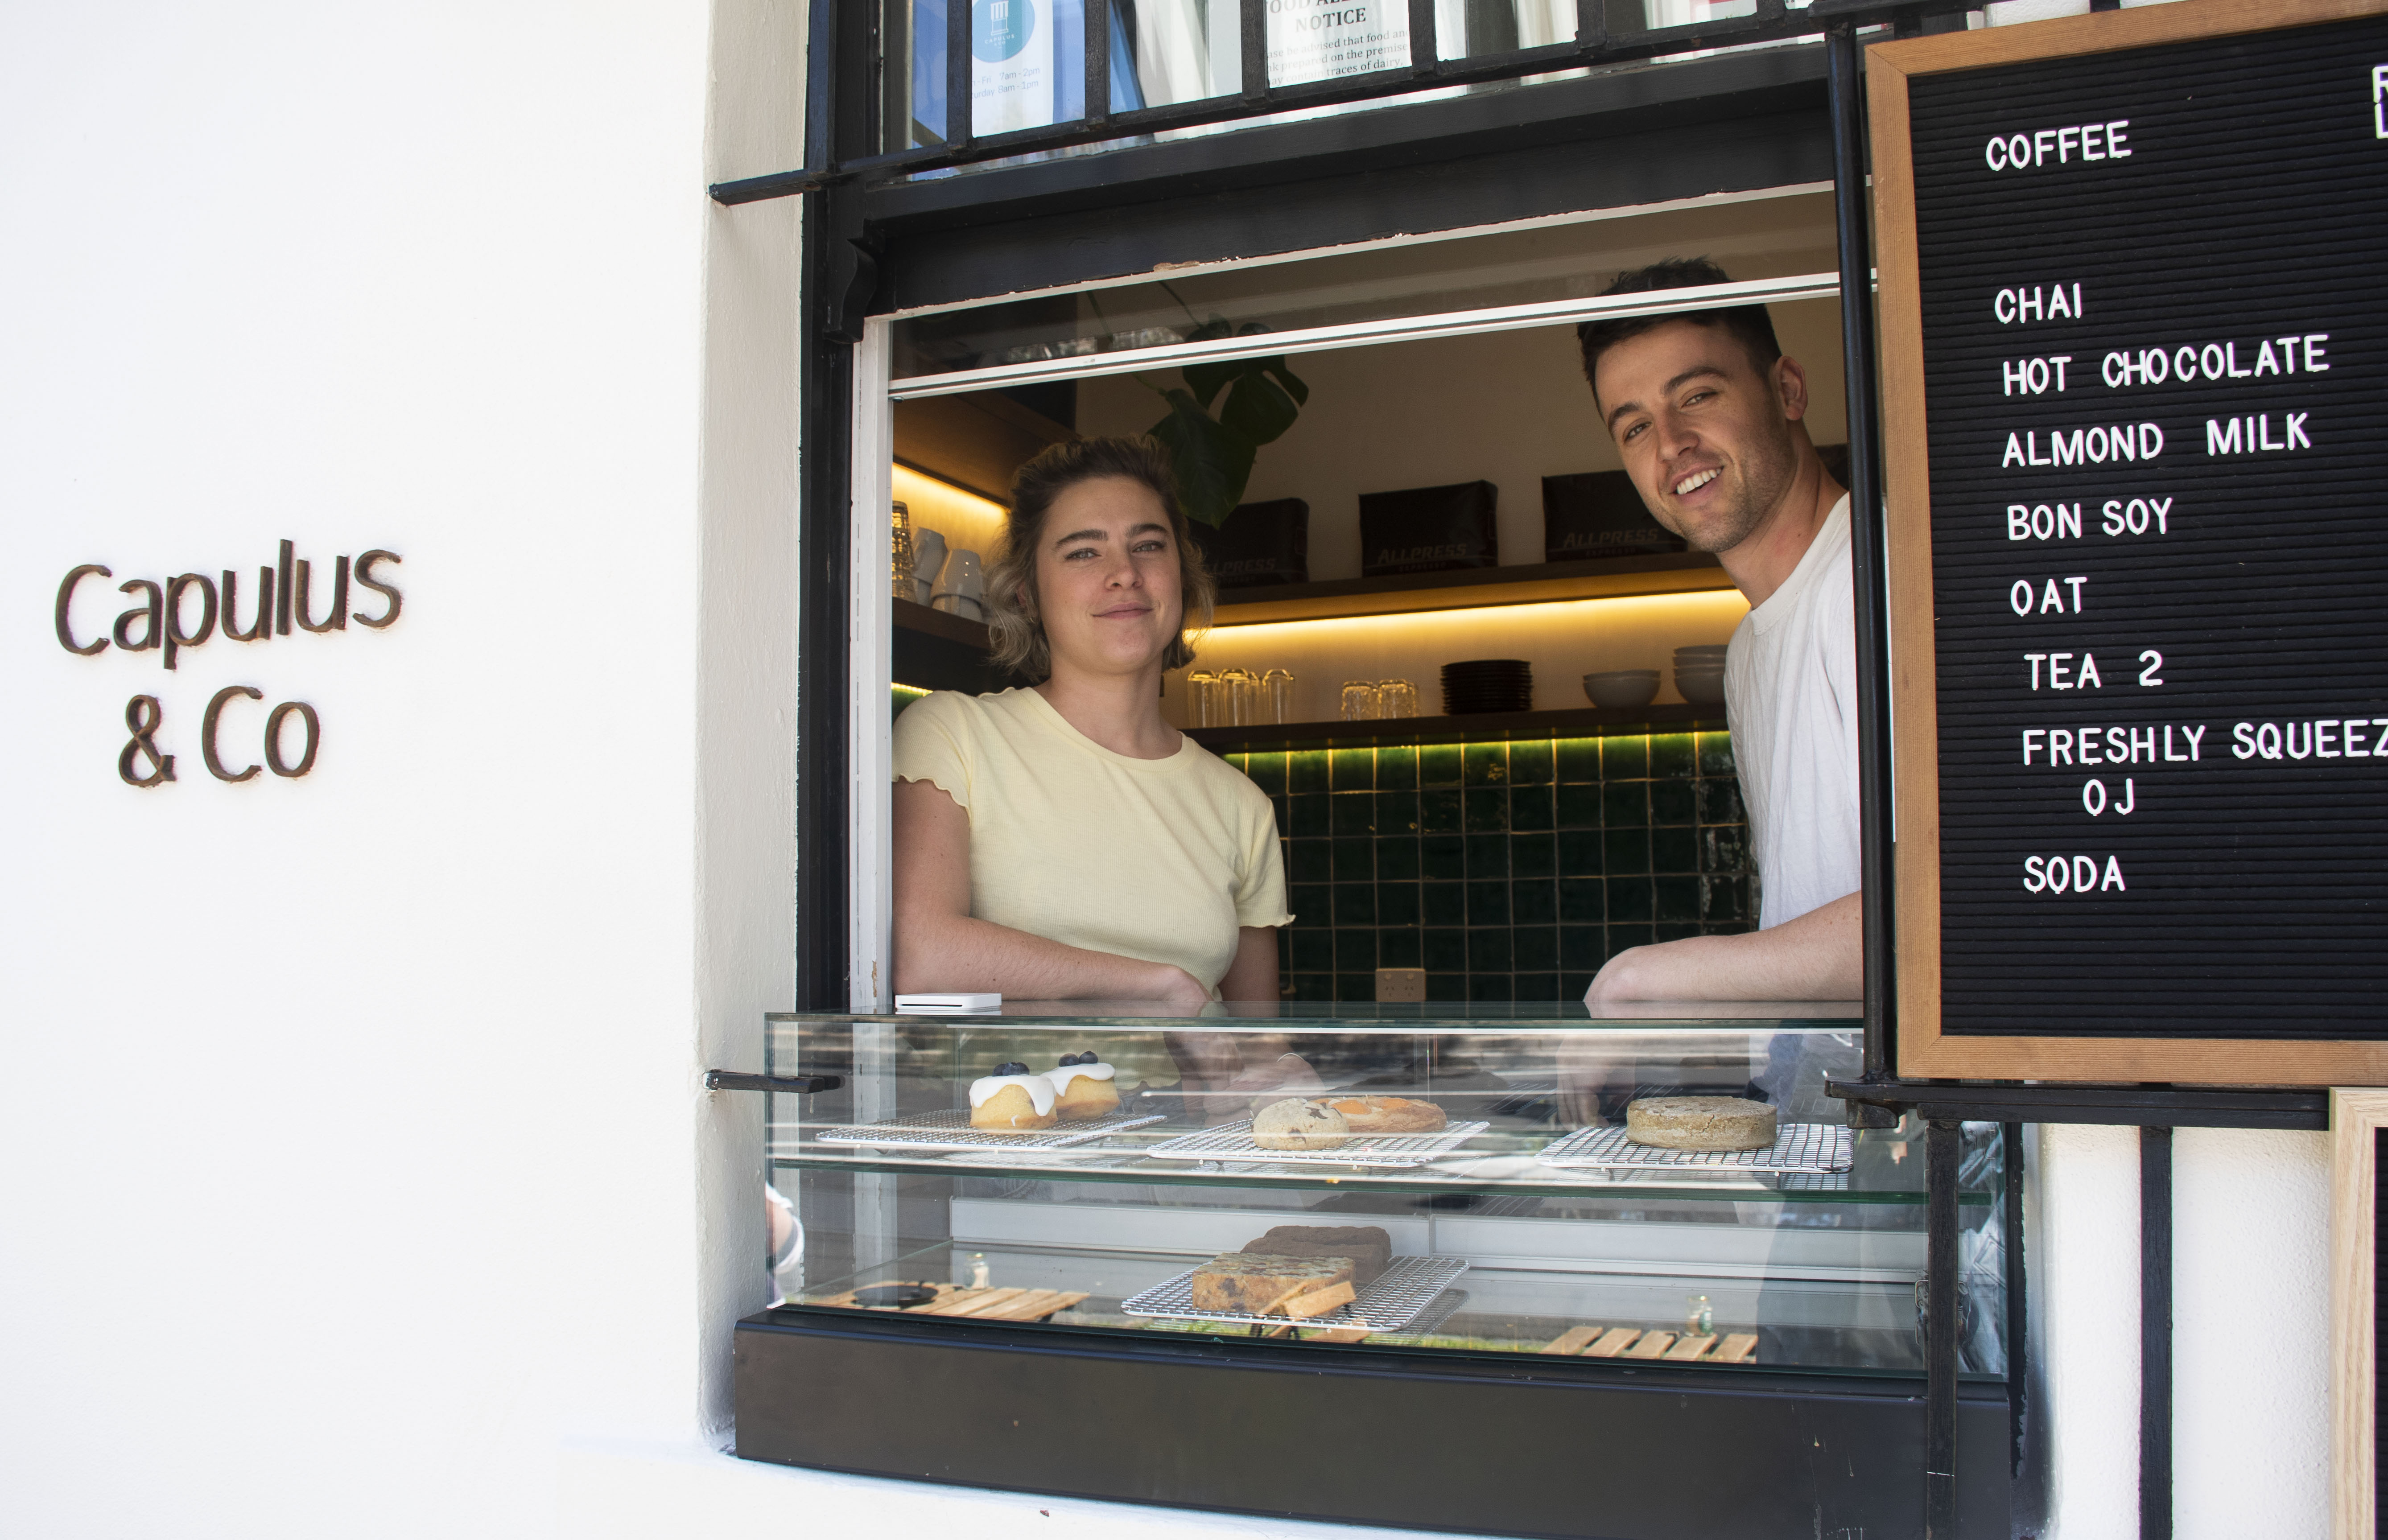 Depending on workdays or weekends, people will choose different ways to consume their coffee, from a sit down and savour experience to a takeaway option.   Francesca Sullivan-McNeill (left) and Christian Sullivan-McNeill (right) are co-owners of Capulus & Co Coffee on Sydney Road, in Brunswick. Christian says that most of their customers choose to take their coffee away on workdays.